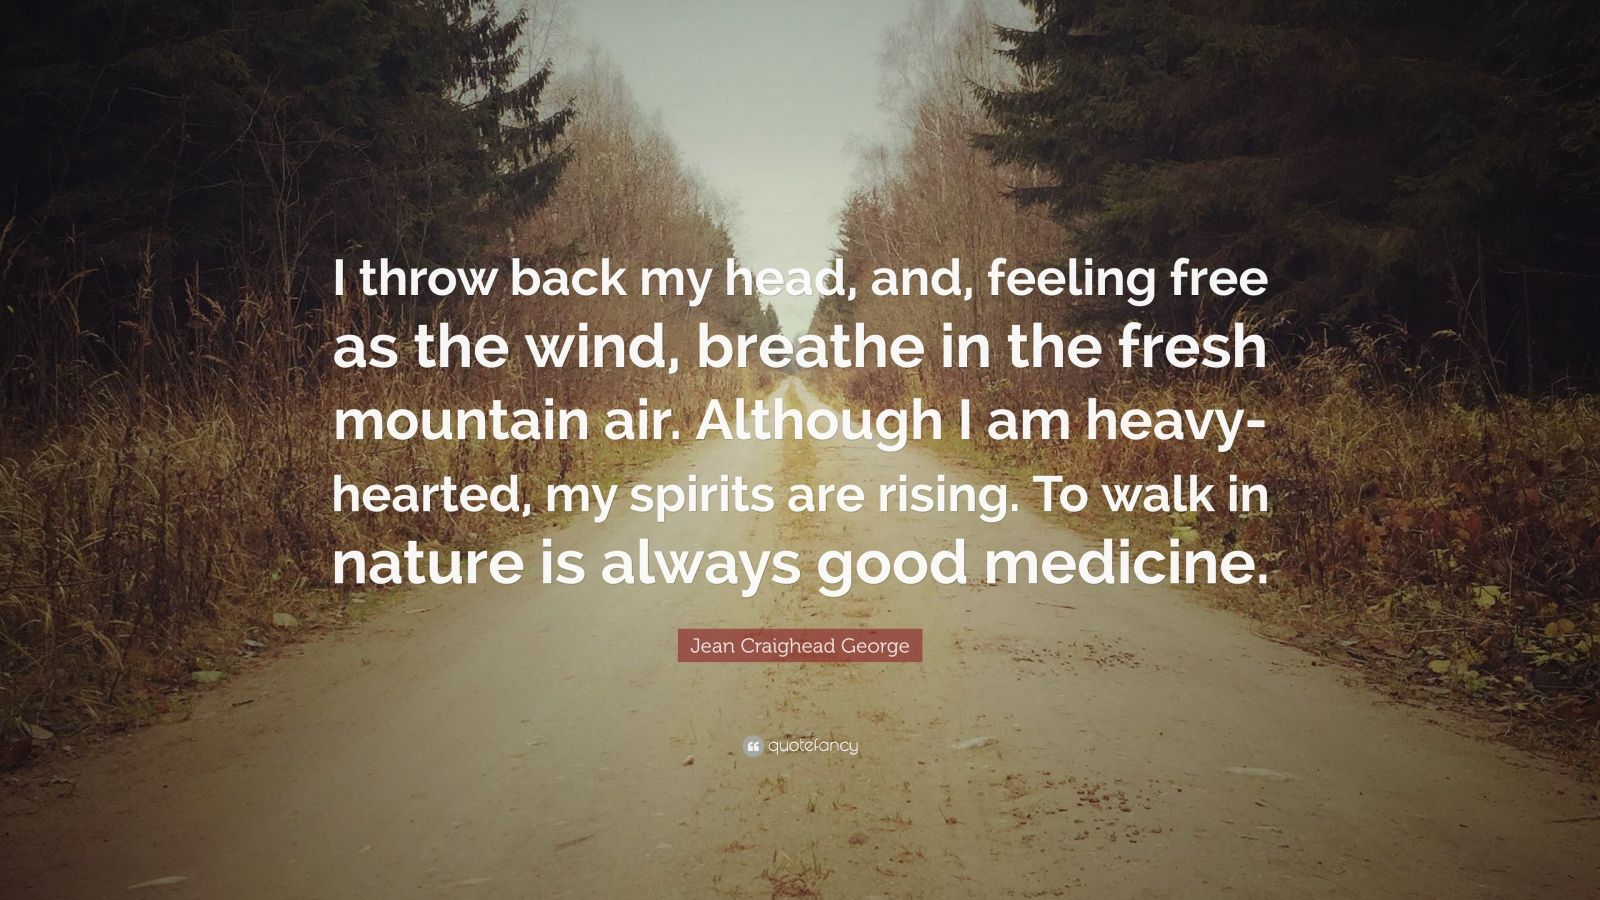 """Jean Craighead George Quote: """"I throw back my head, and, feeling free as the wind, breathe in the fresh mountain air. Although I am heavy-hearted, my spirits are rising. To walk in nature is always good medicine."""""""